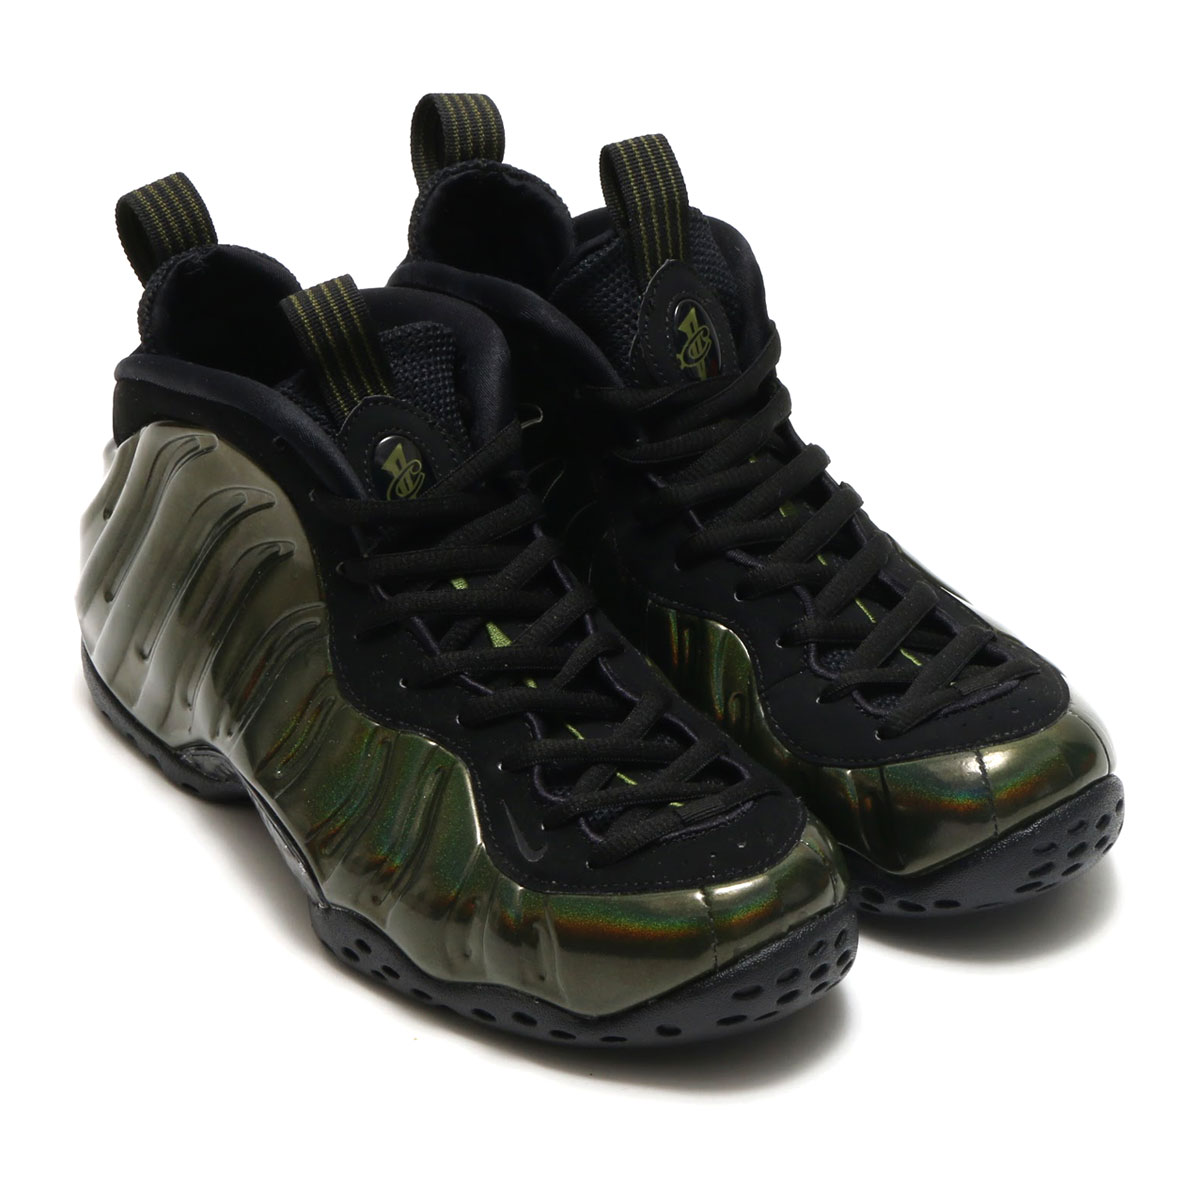 c9c6a64c Penny Hardaway who showed an act of God with a coat in エアフォームポジットワン at the  mid-90s. The most recent version using region green and the black ...